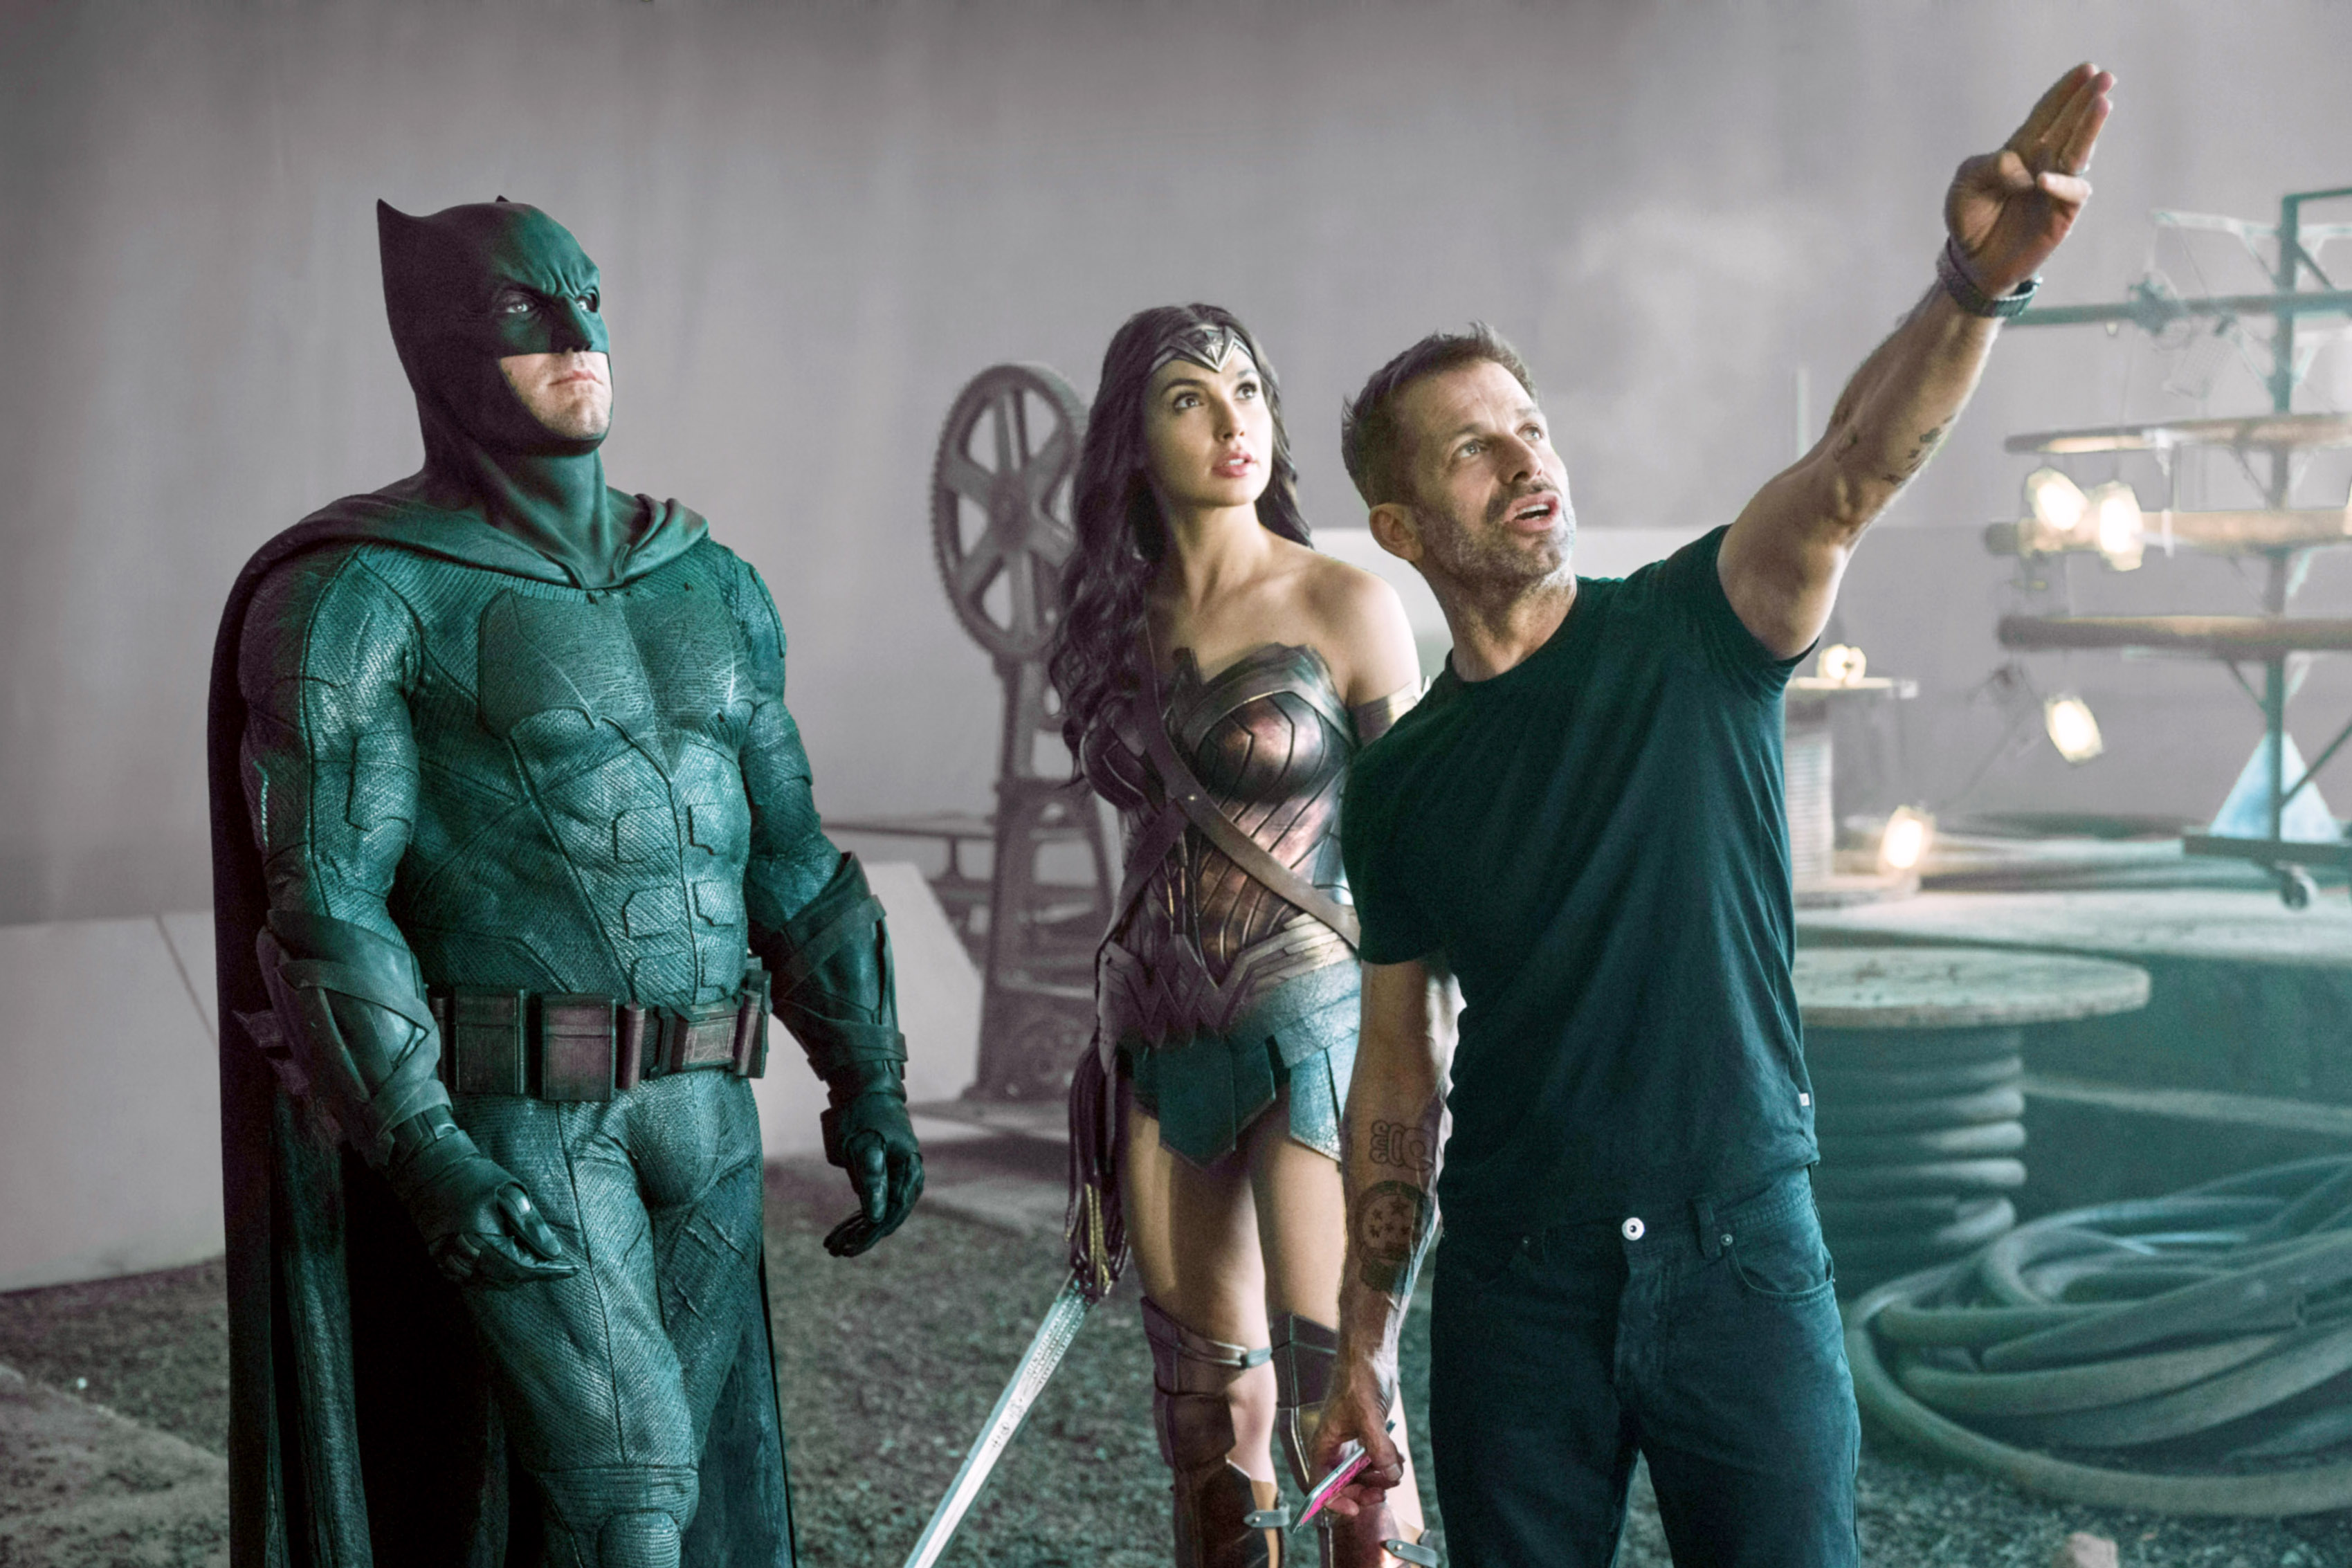 Zack Snyder's 'Justice League' cut proves DC is a sloppy mess